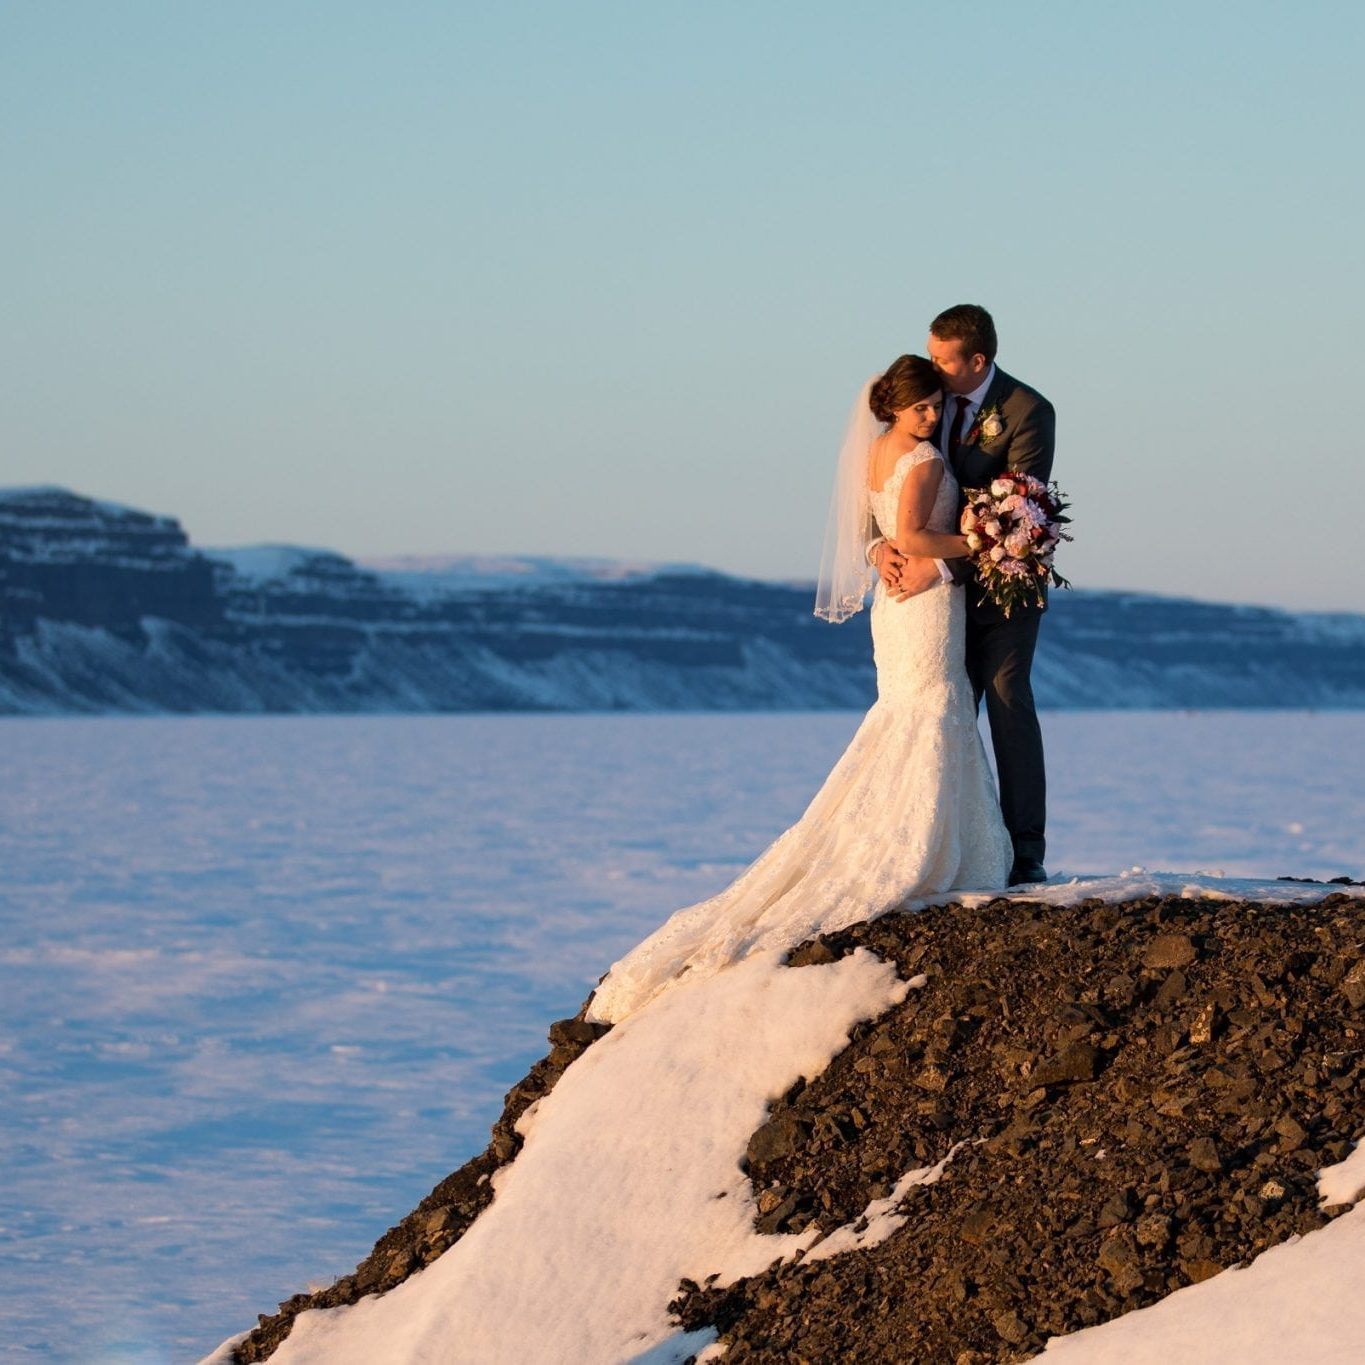 Wedding photography by Franklin Photography